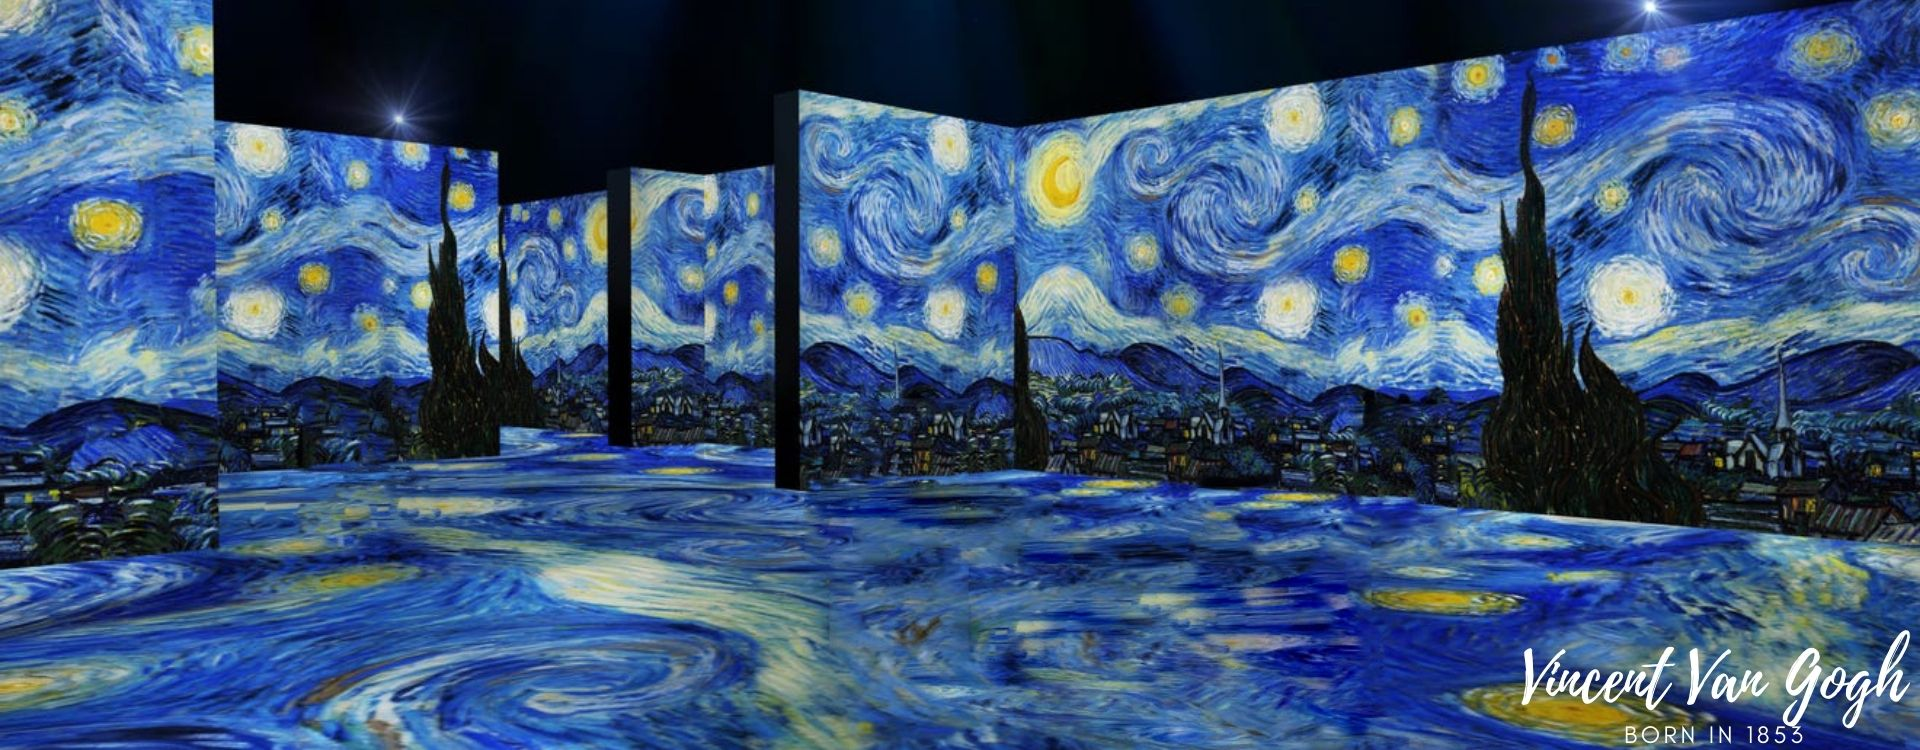 custom Vincent van Gogh souvenir wholesale manufacturer and supplier in China